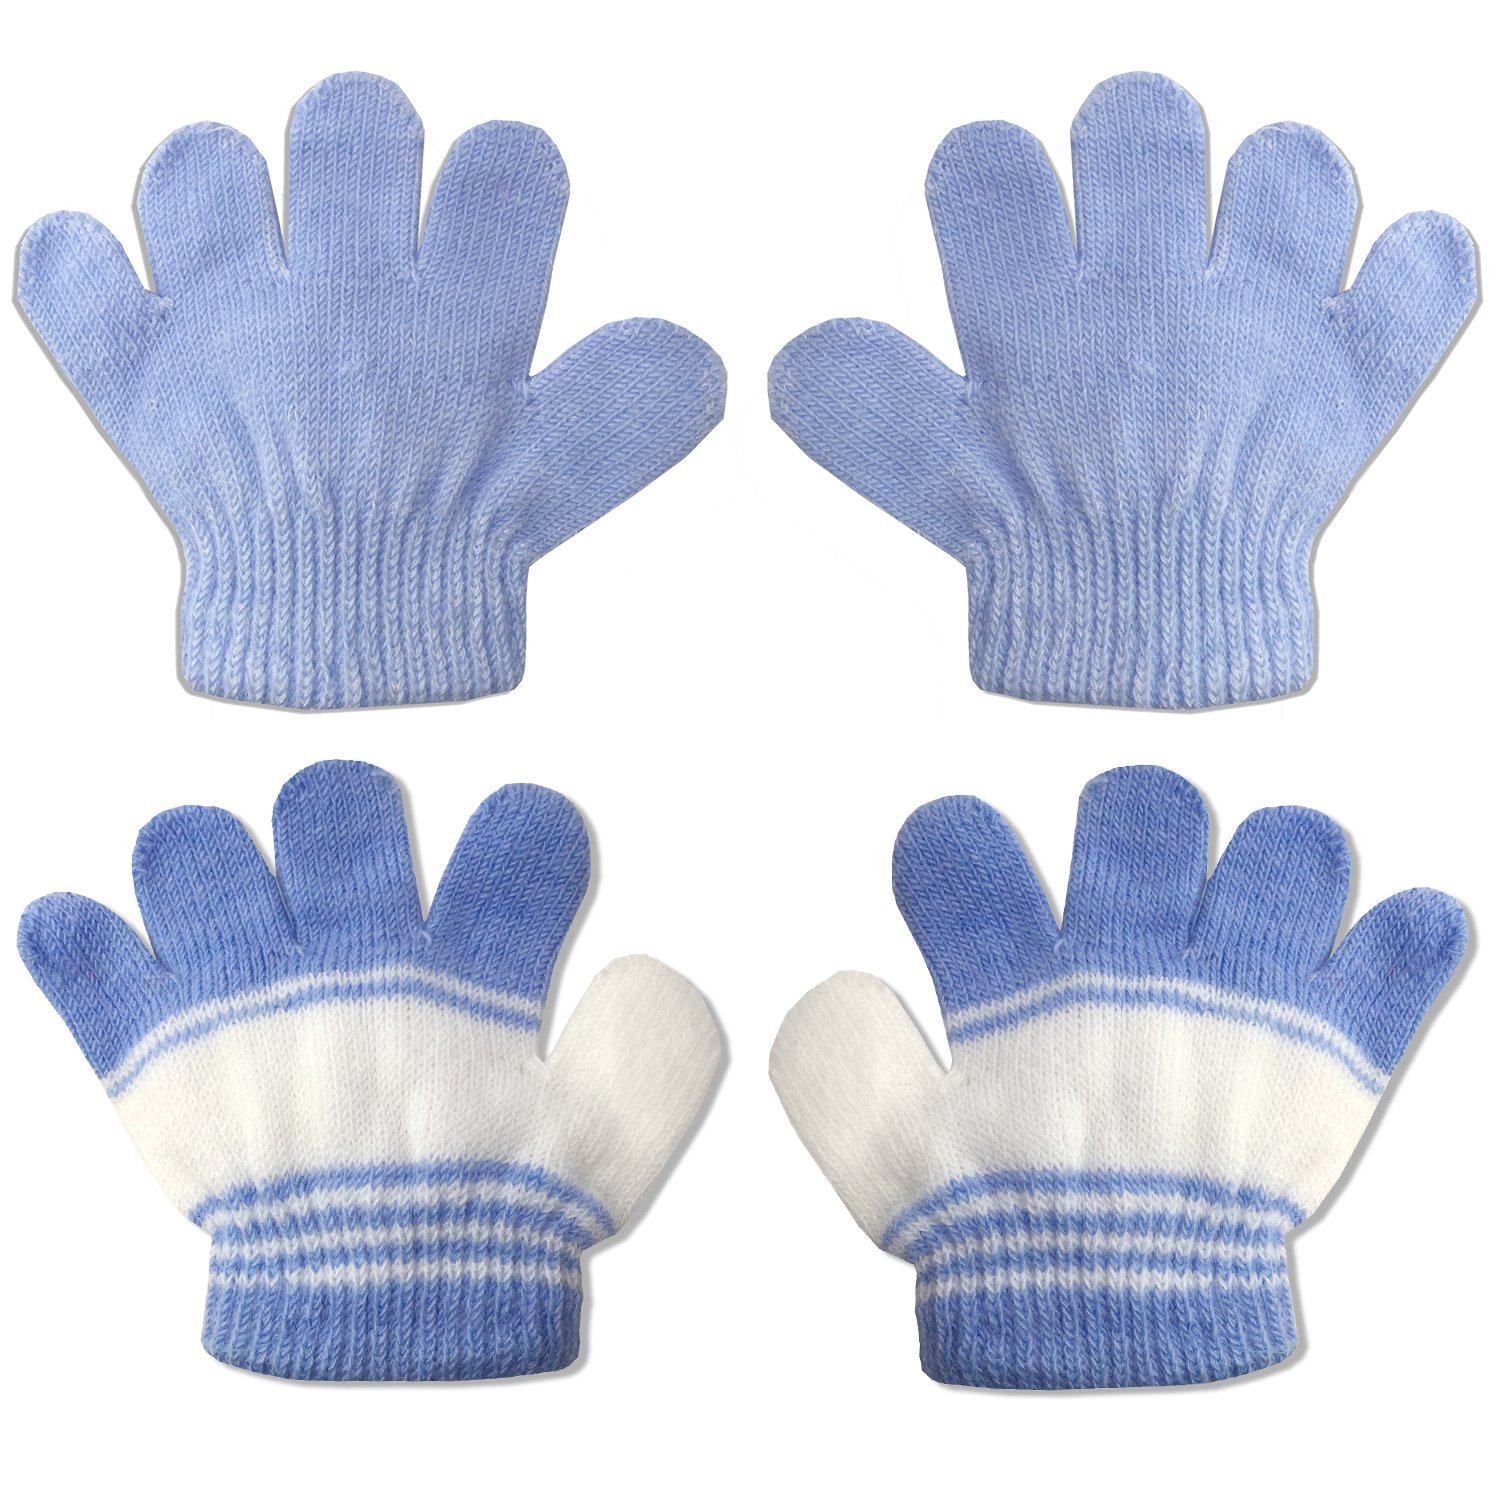 2 Pair Pack Infant to Toddler Baby Gloves Stretchy Knit Warm Winter (Ages 0-3) 4521-S-4-2PK-BLU